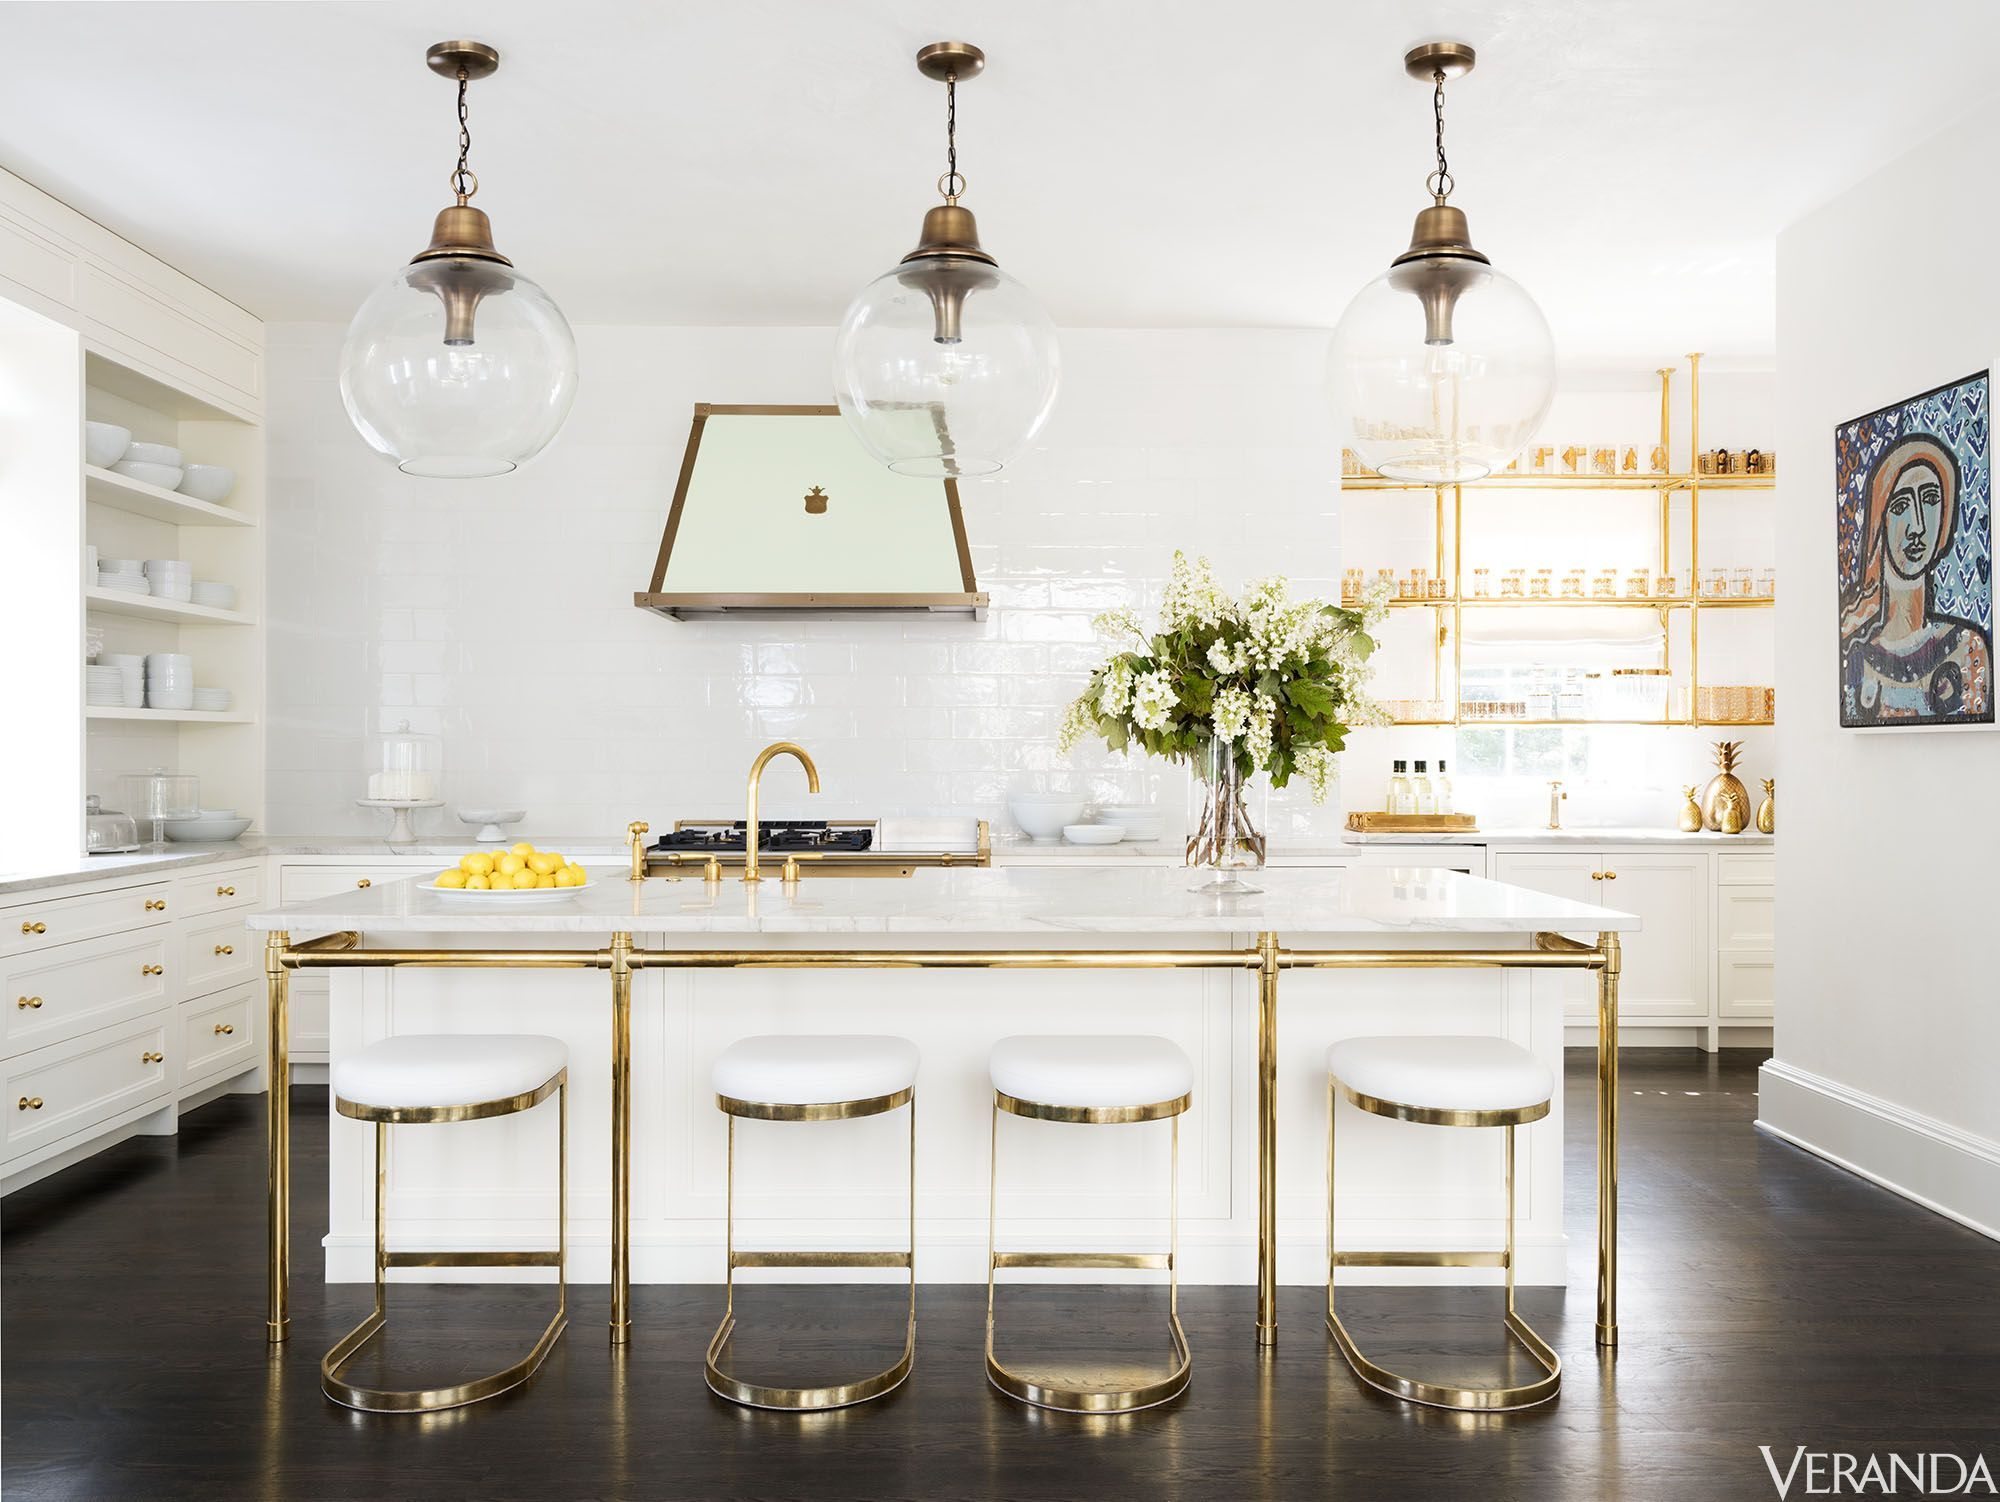 Home Tour: A Historic Atlanta Home Gets A Playful Renovation Fit For ...